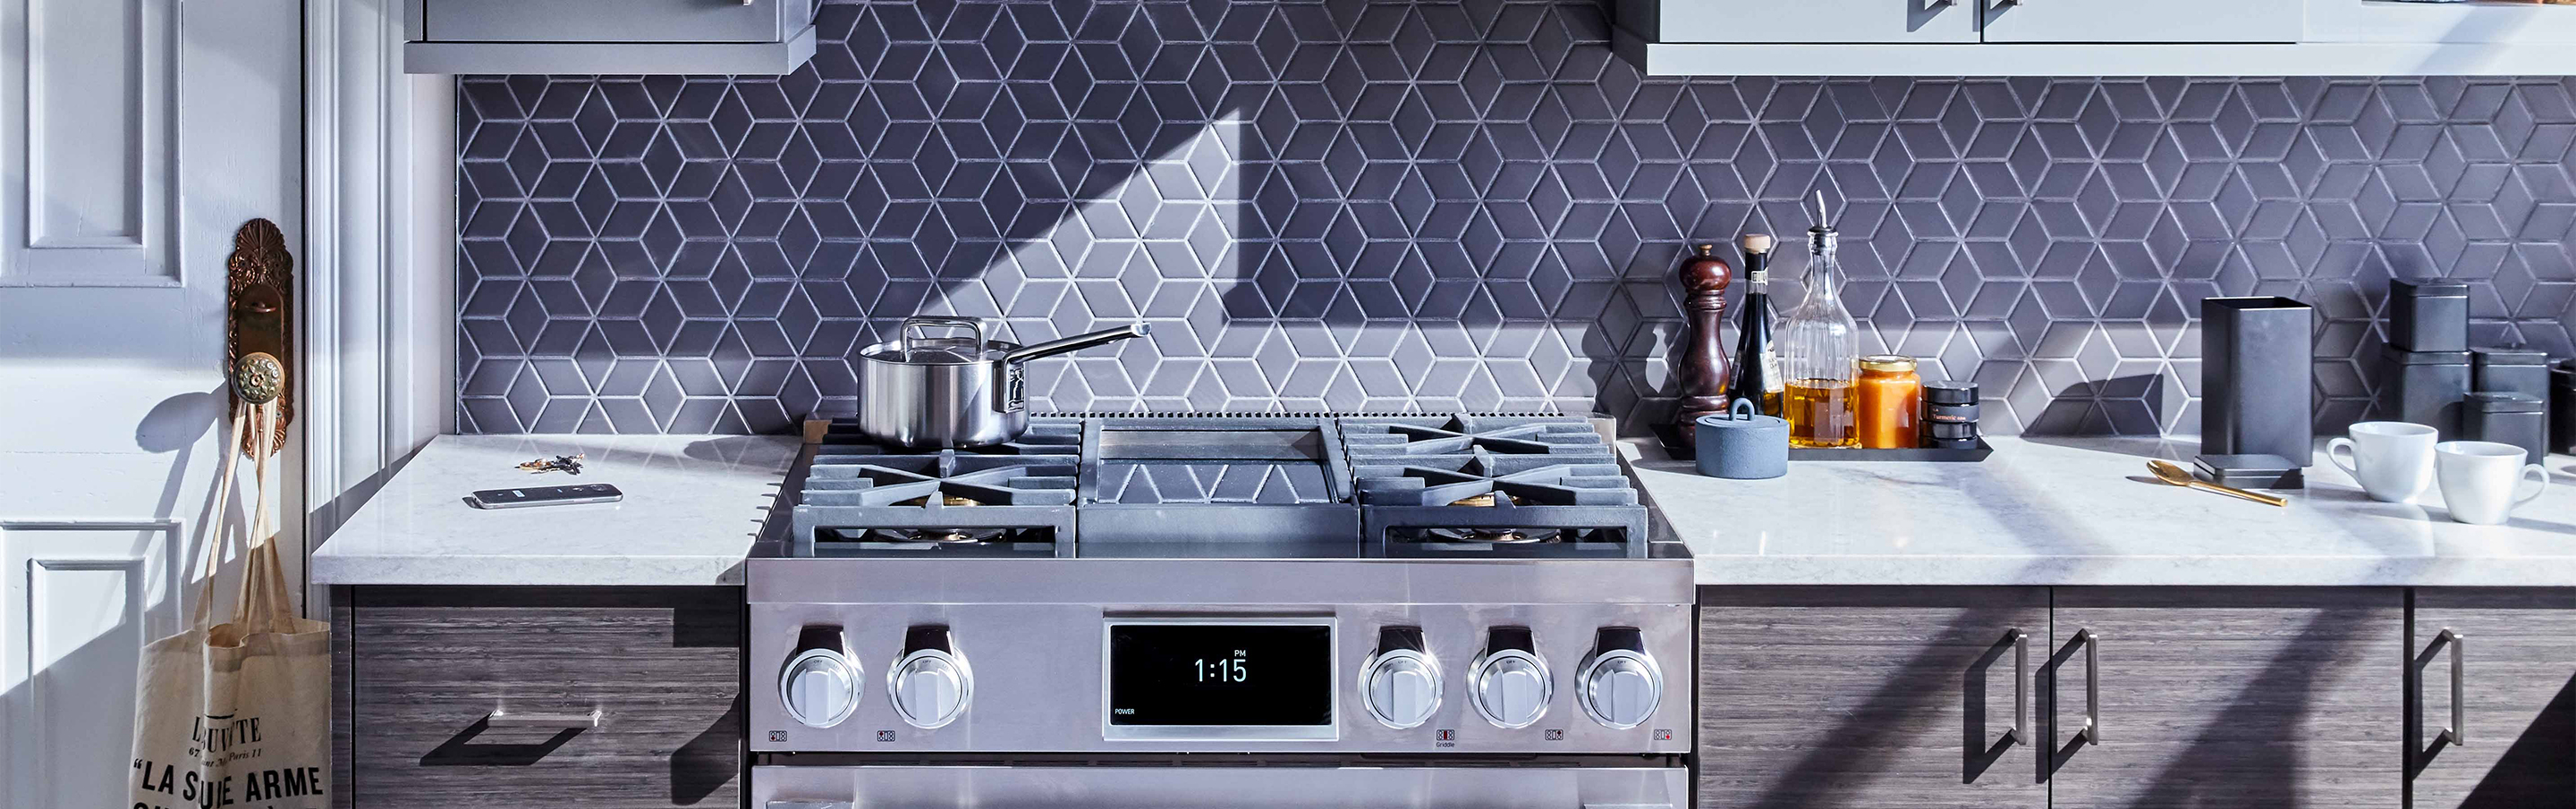 36-inch Pro Range  with Chromium Griddle by Signature Kitchen Suite